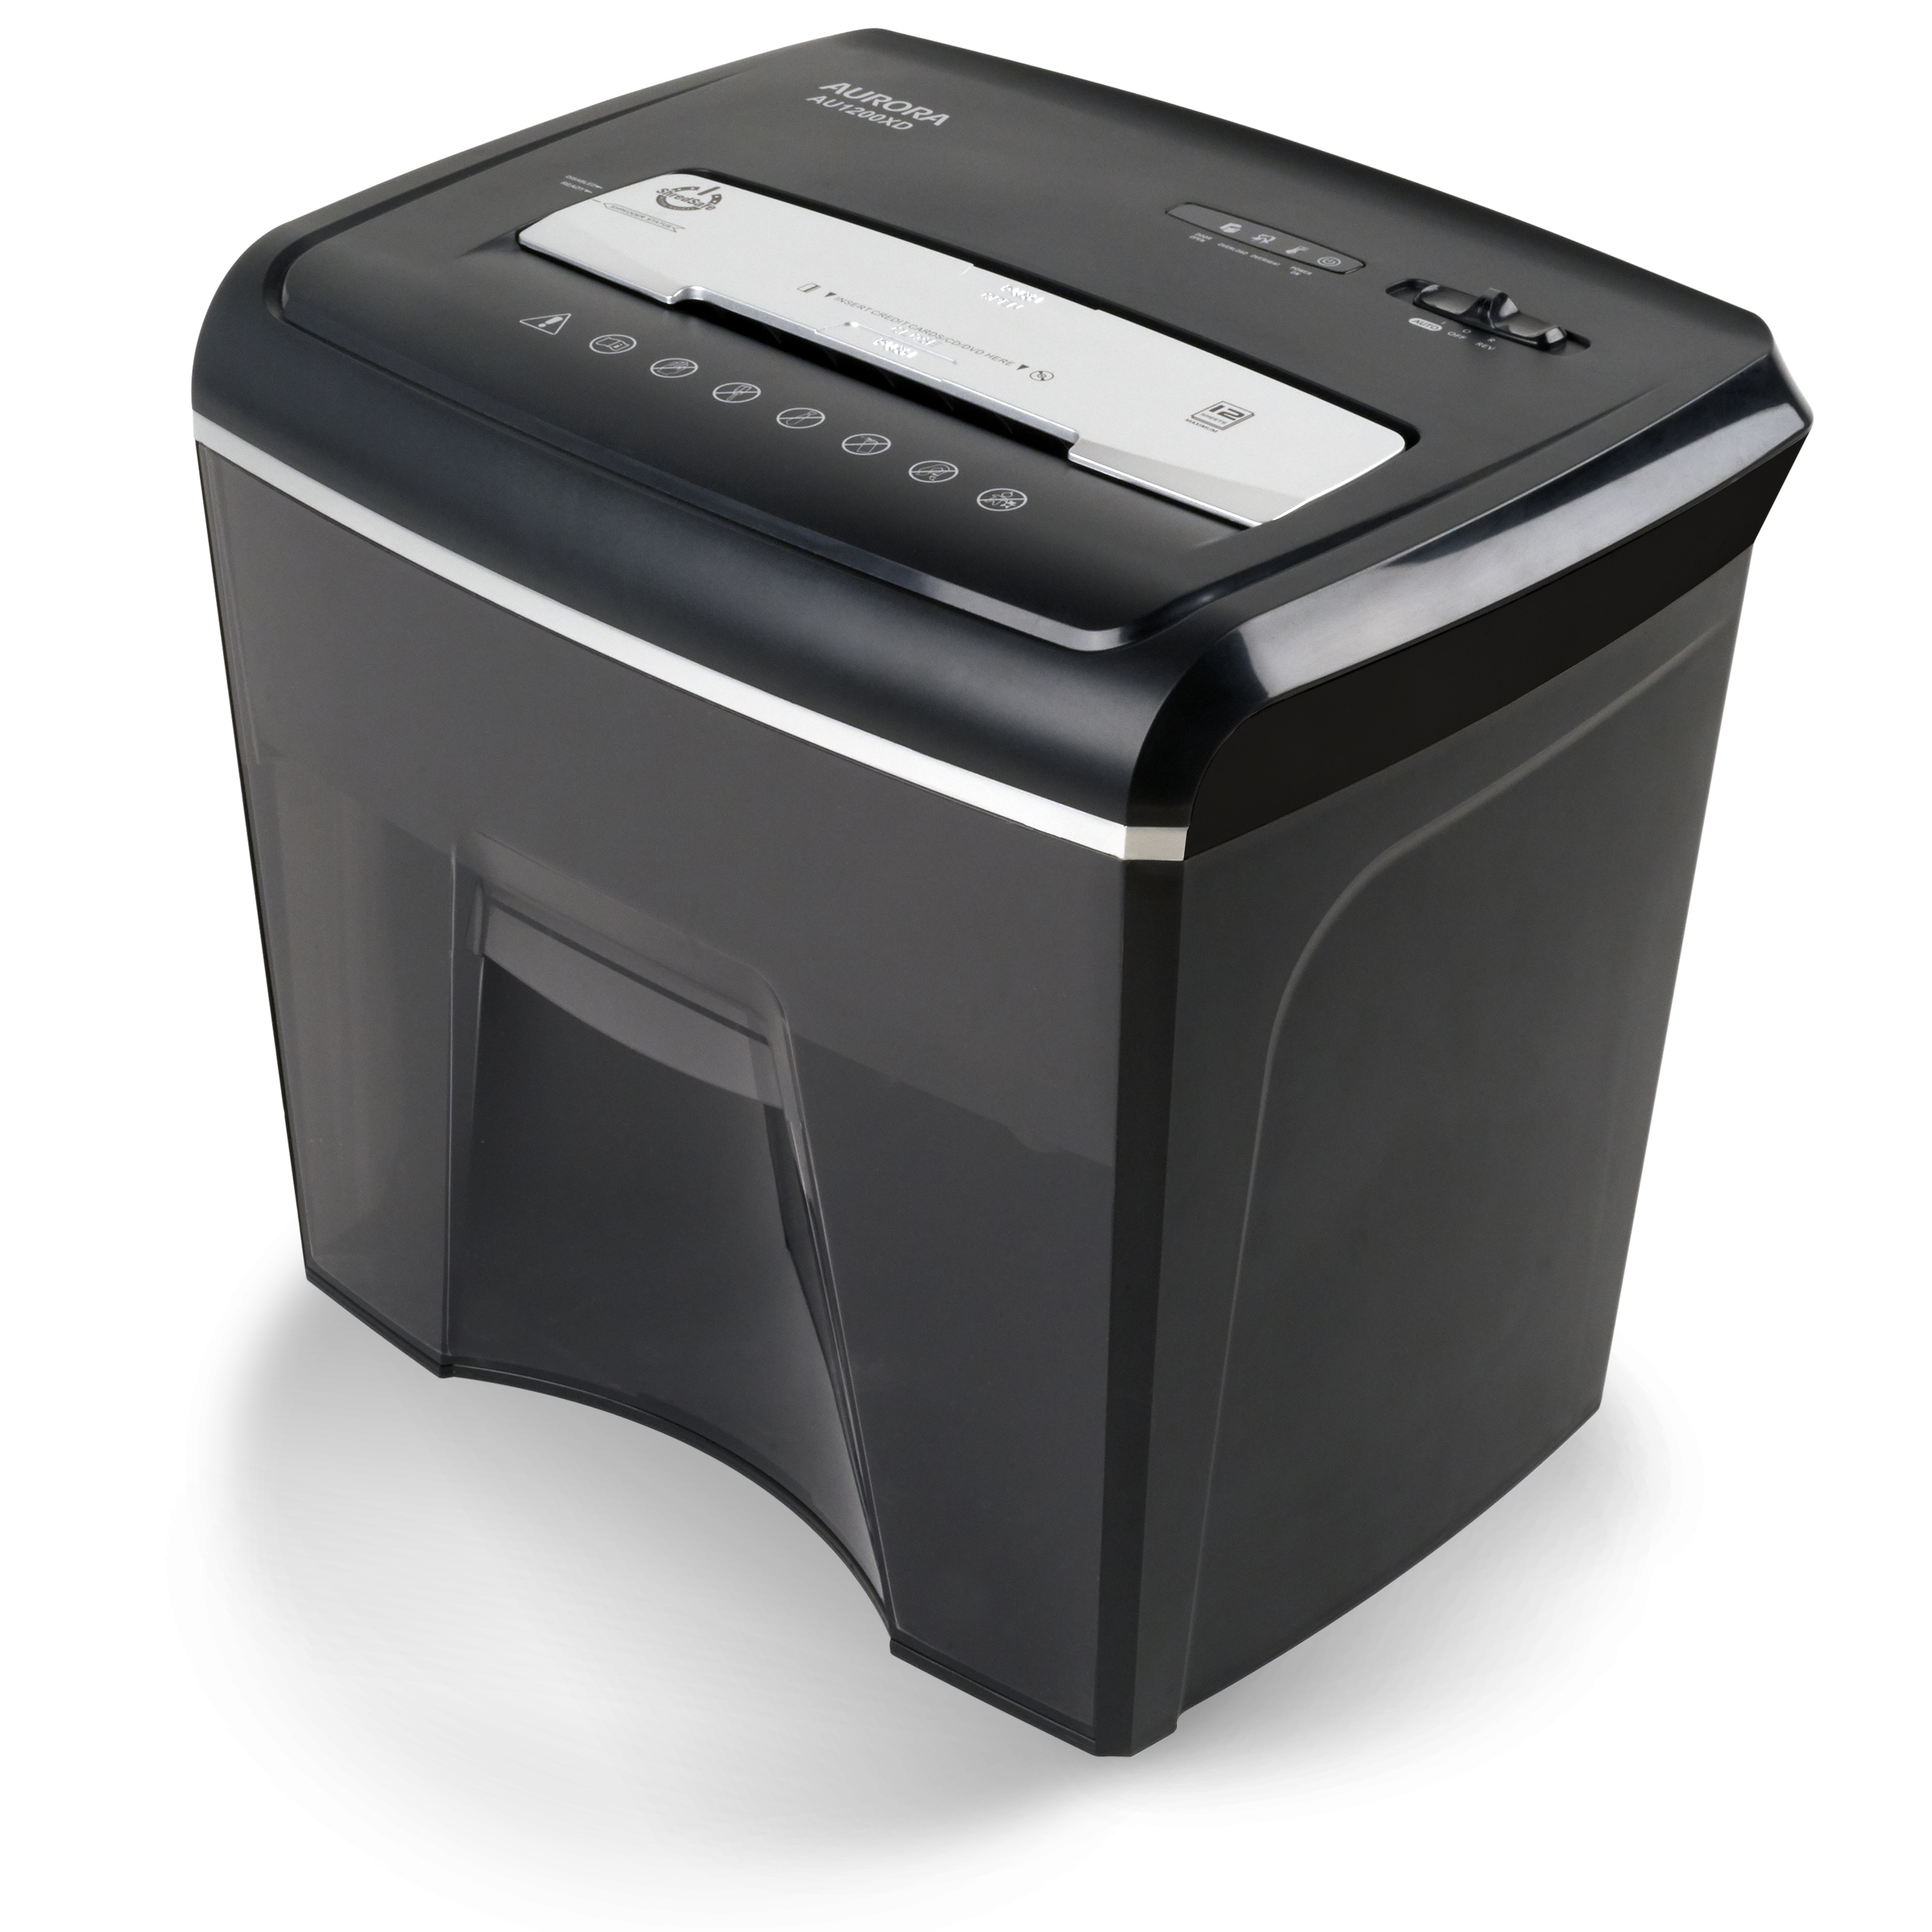 Aurora Compact Desktop-Style 12-Sheet Crosscut Paper and CD/Credit Card/ Junk Mail Pullout Basket Shredder